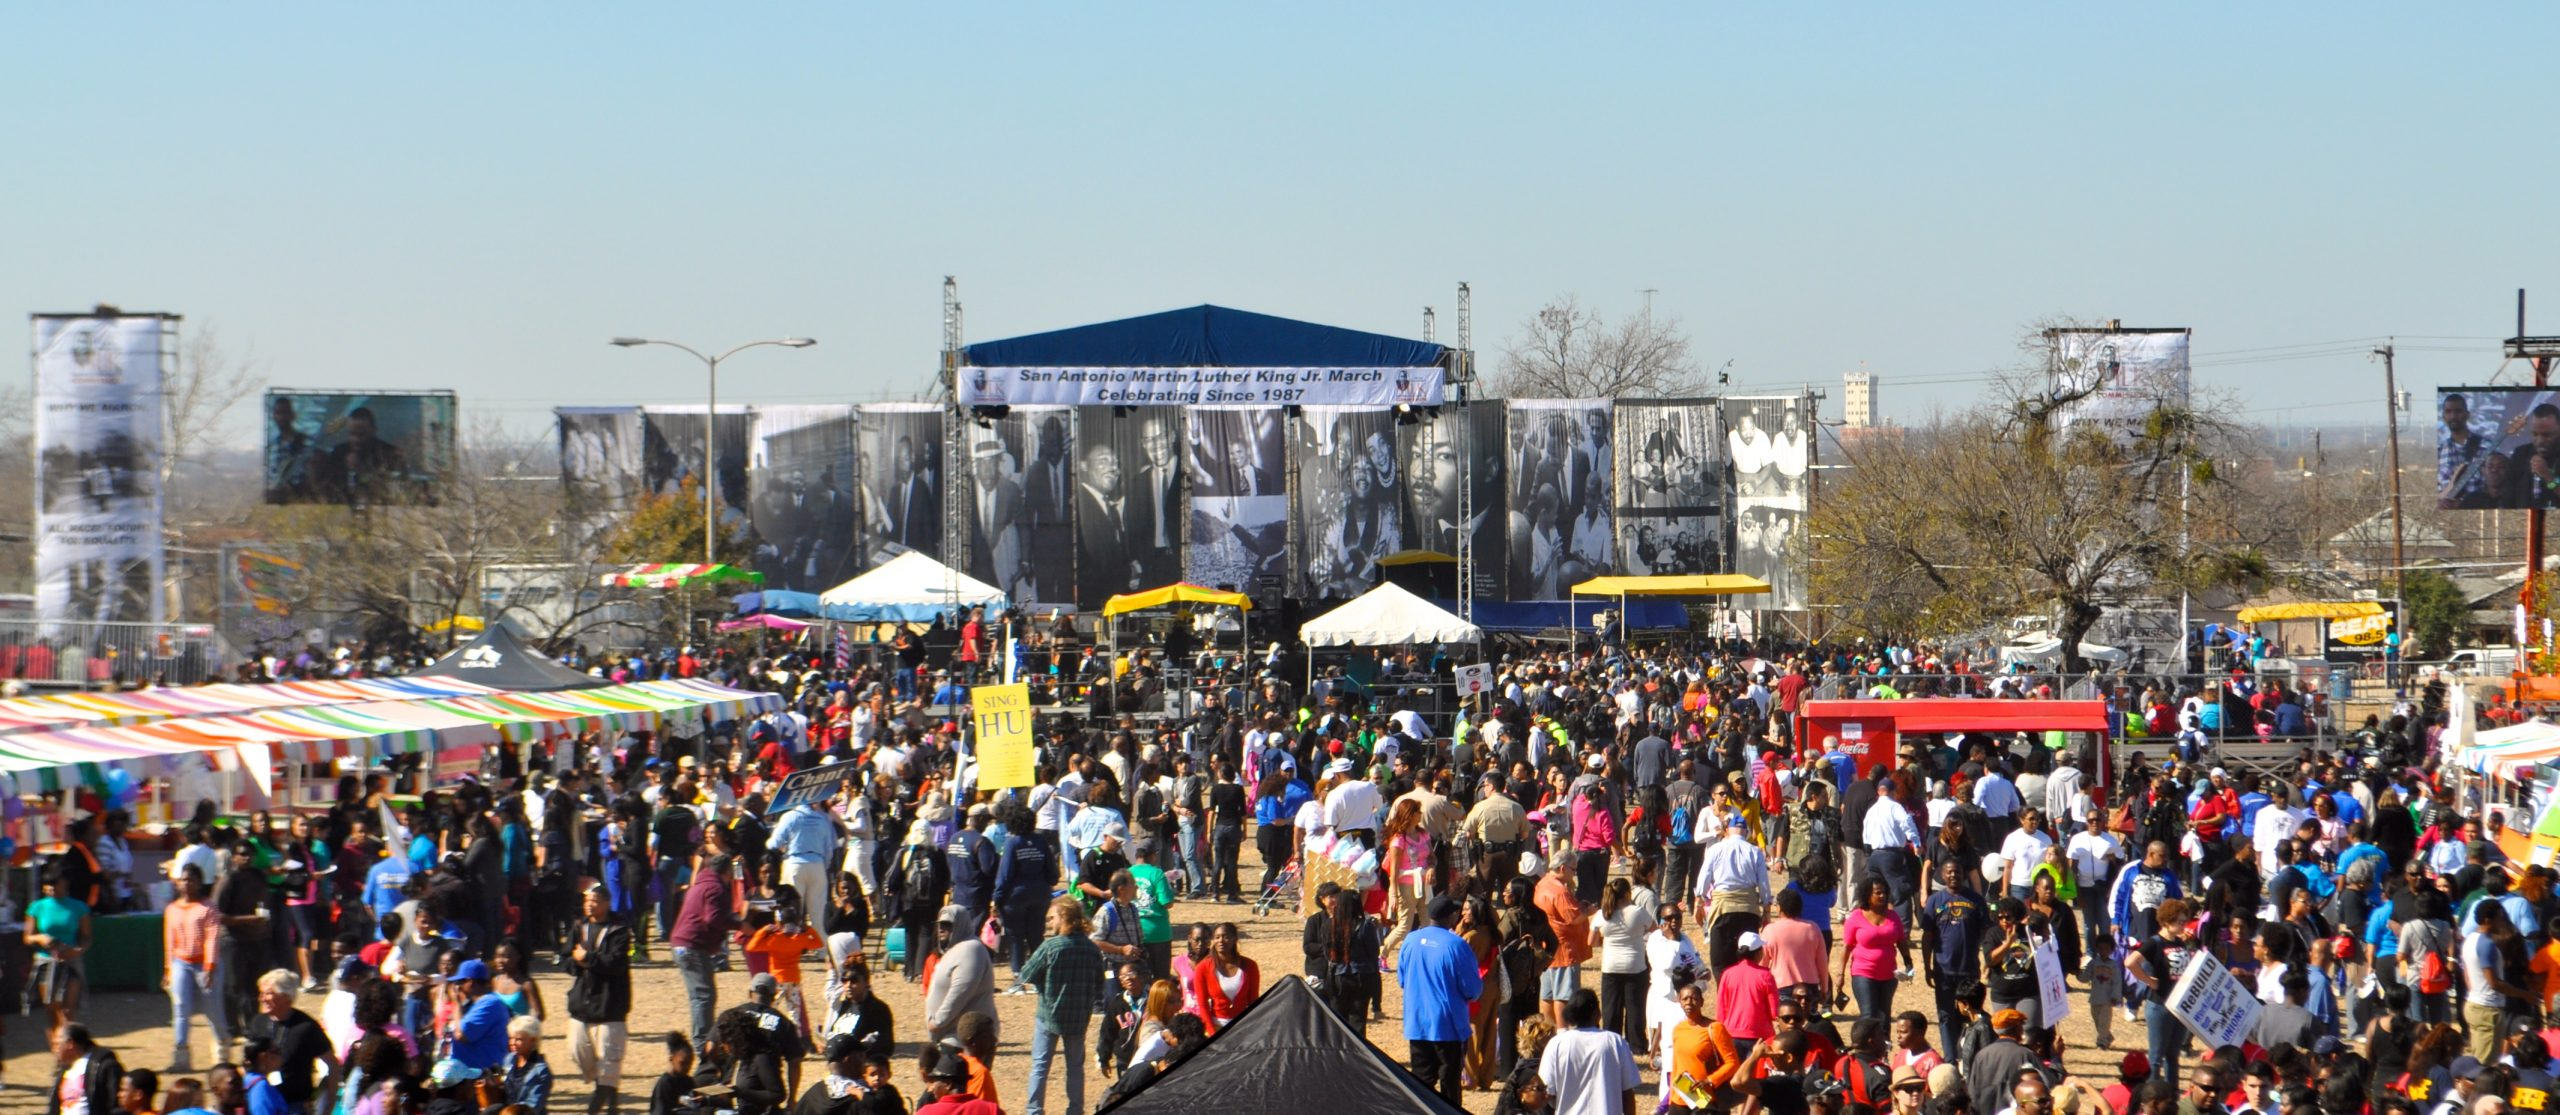 Organizers estimate that more than 170,000 people attended this year's MLK Day celebration. Photo by Iris Dimmick.